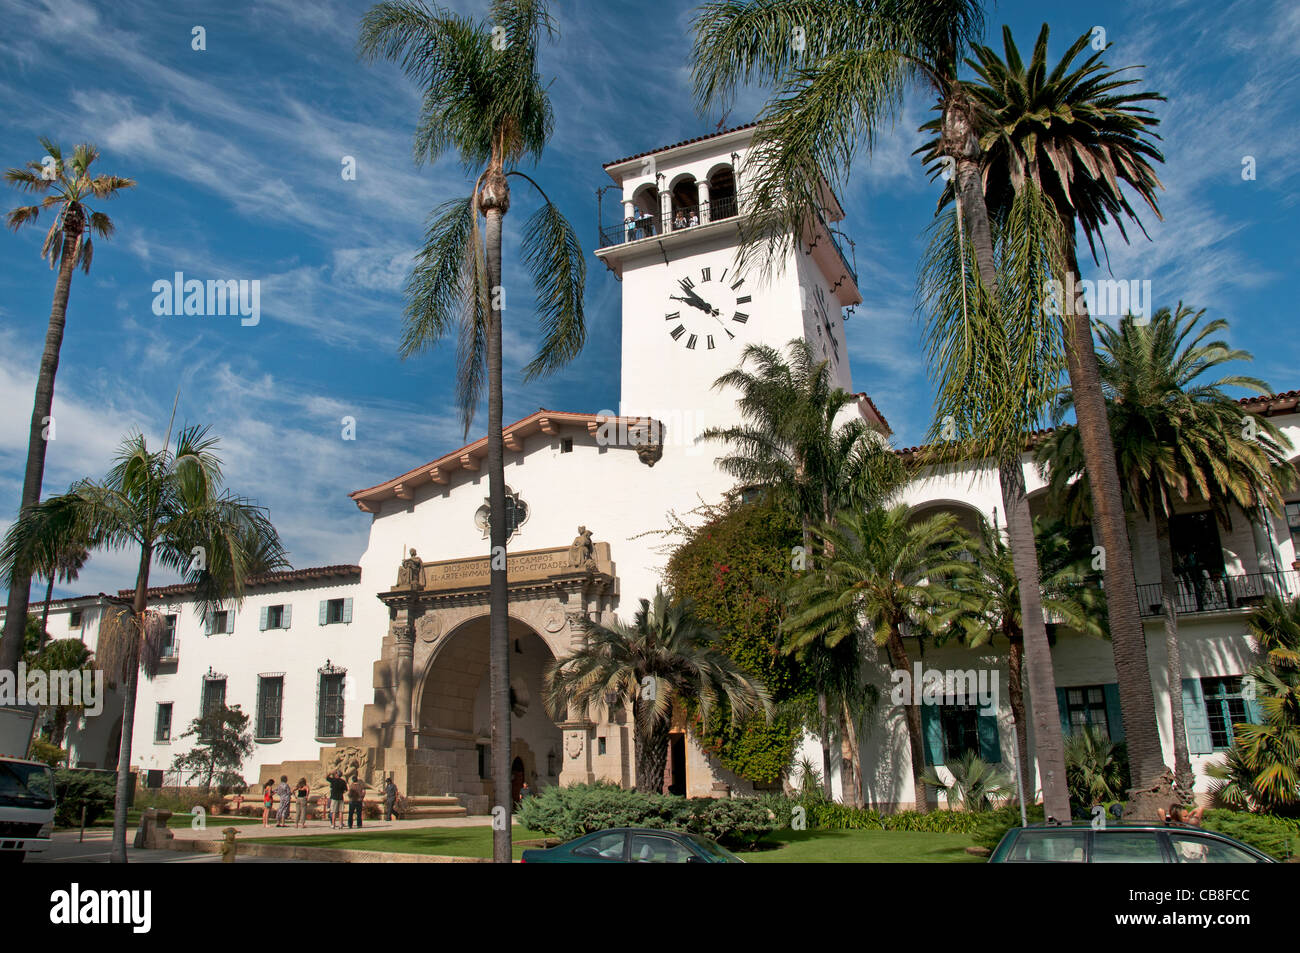 Santa Barbara Courthouse California United States - Stock Image